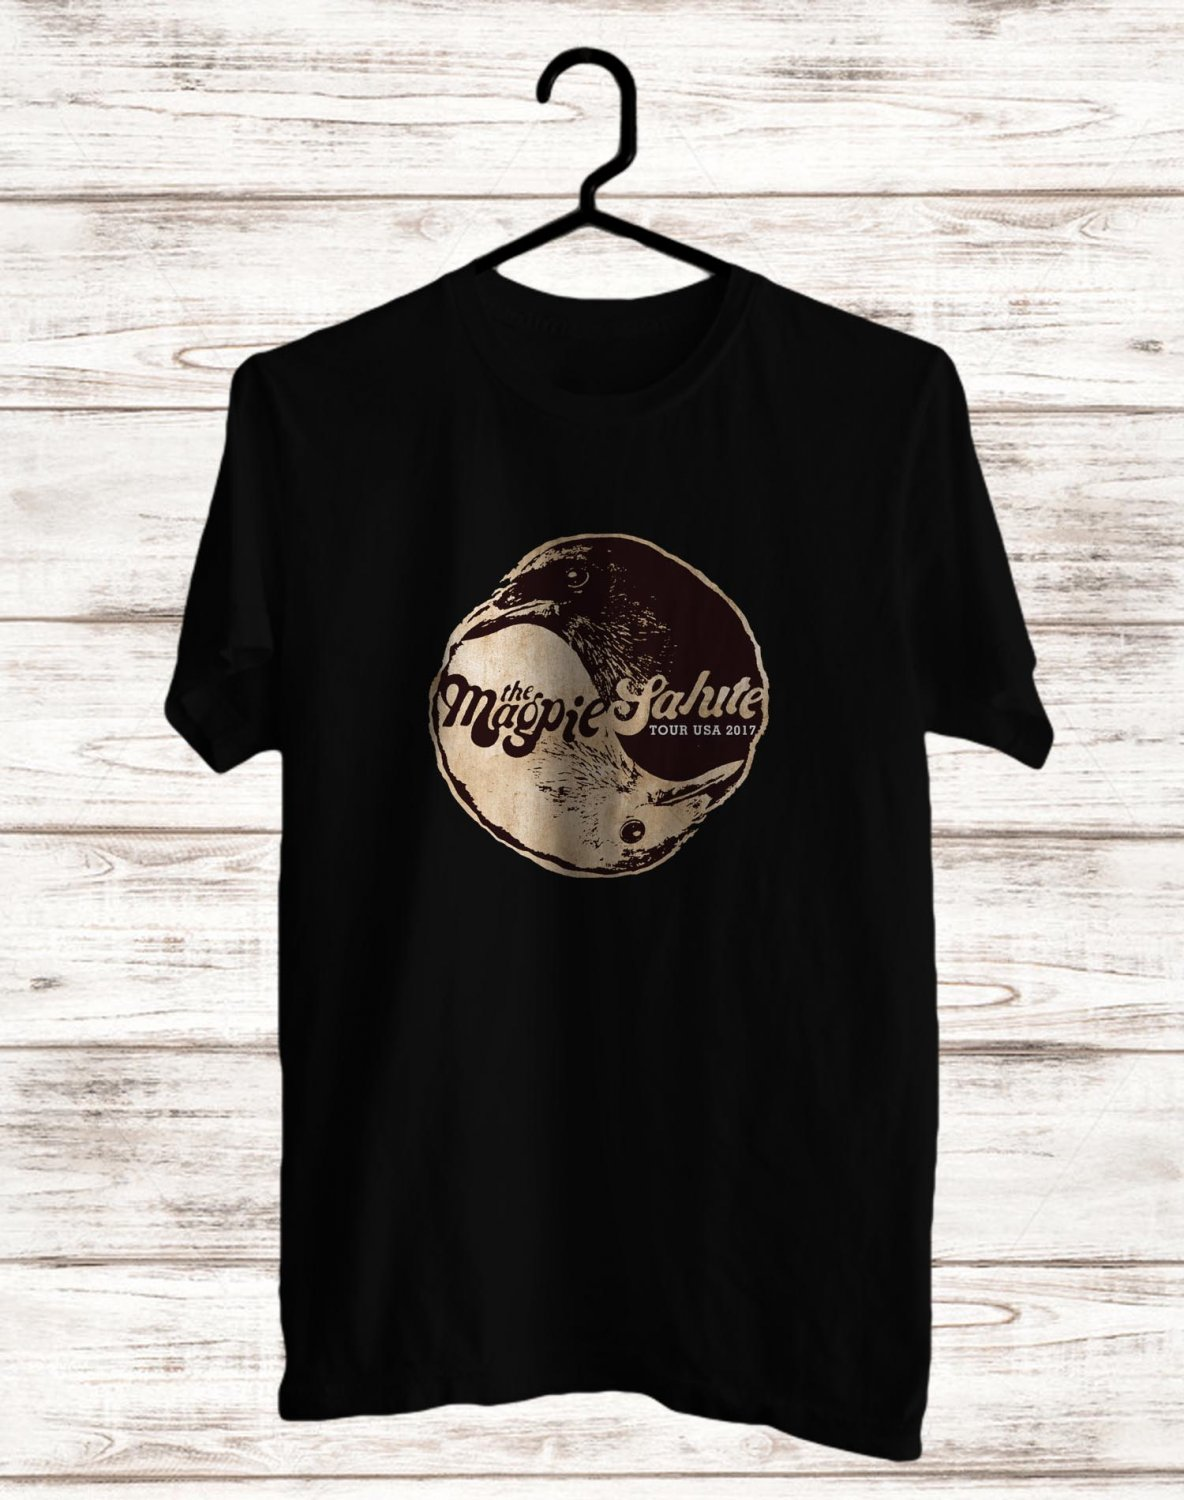 The Magpie Salute Tour 2017 BLack Tee's Front Side by Complexart z2